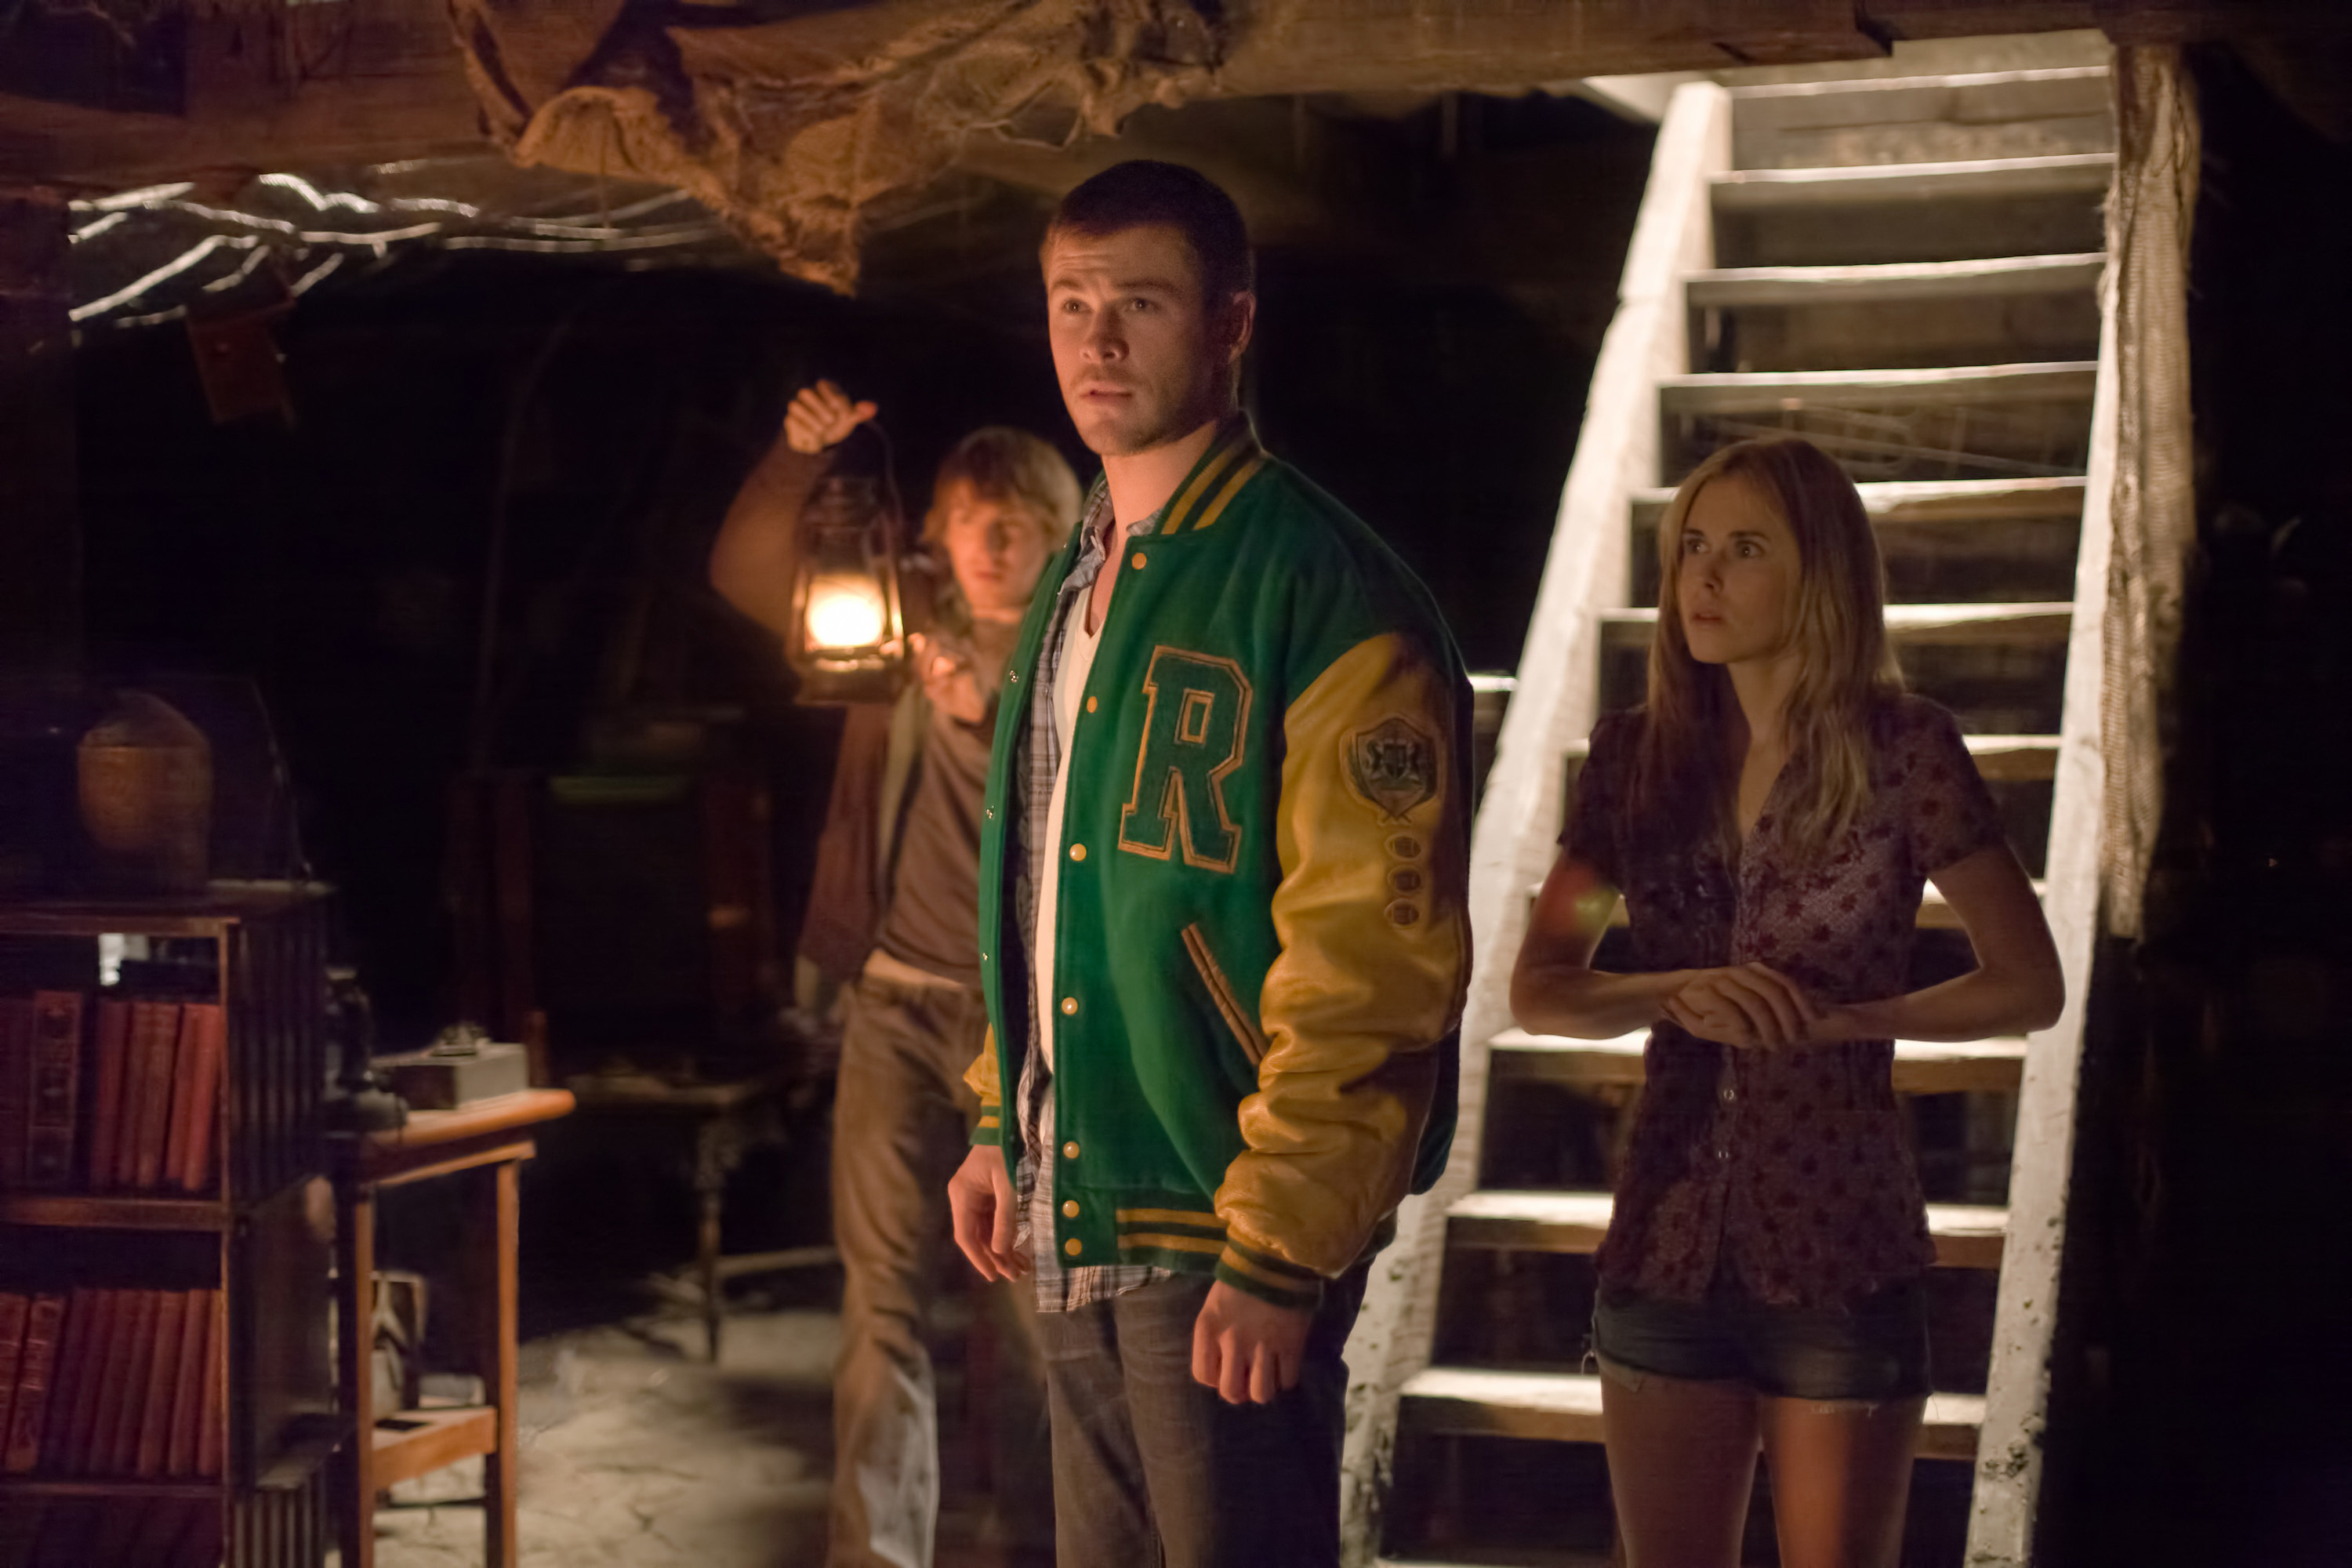 Curt standing in a basement in a Letterman jacket in The Cabin In The Woods